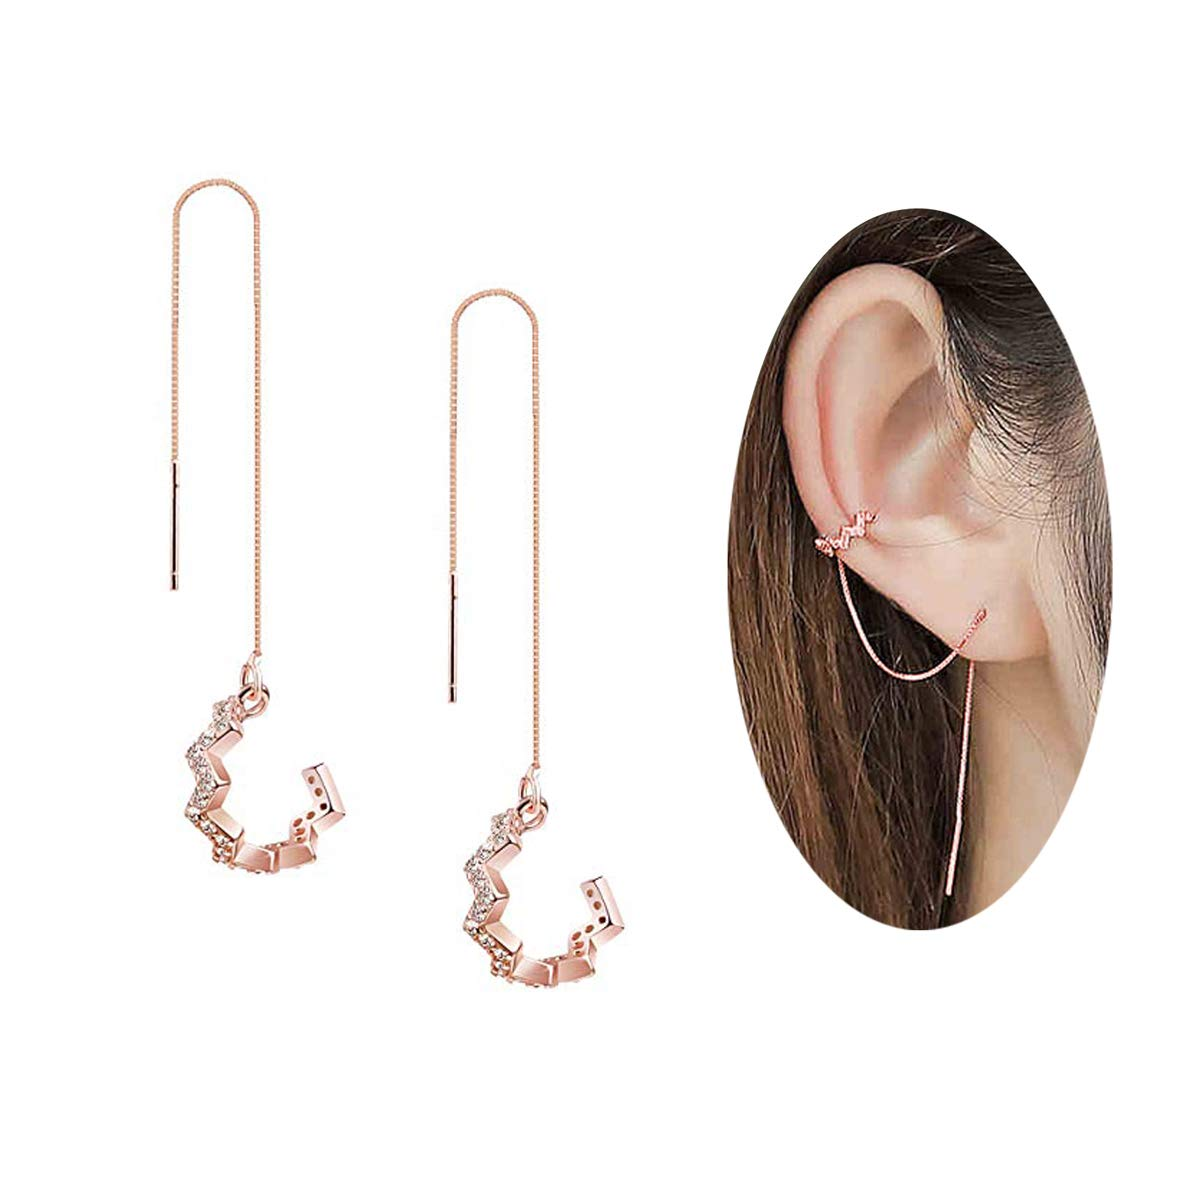 FarryDream 925 Sterling Silver New Arrival Wave Cuff Earrings Wrap Tassel Earrings for Women Threader Earrings Perfect Valentine's Day Gifts (rose-gold-plated)